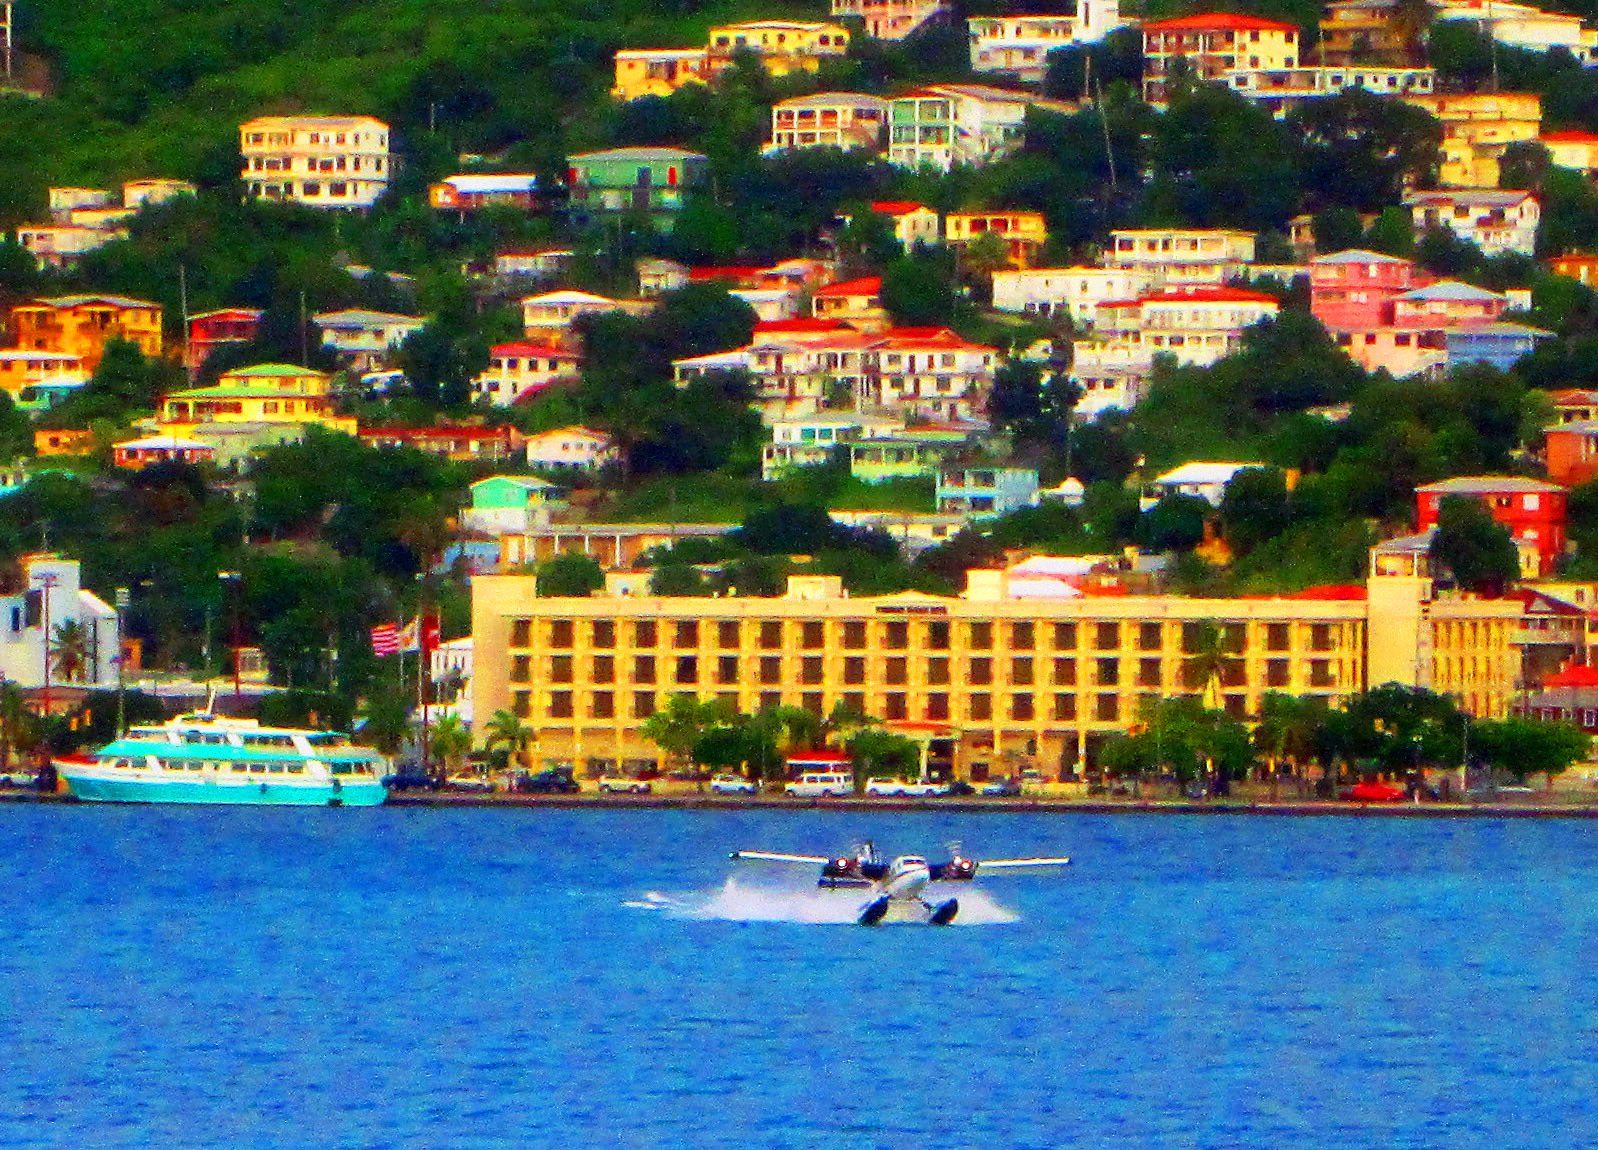 Sea Plane Touching Down In St Thomas Harbor